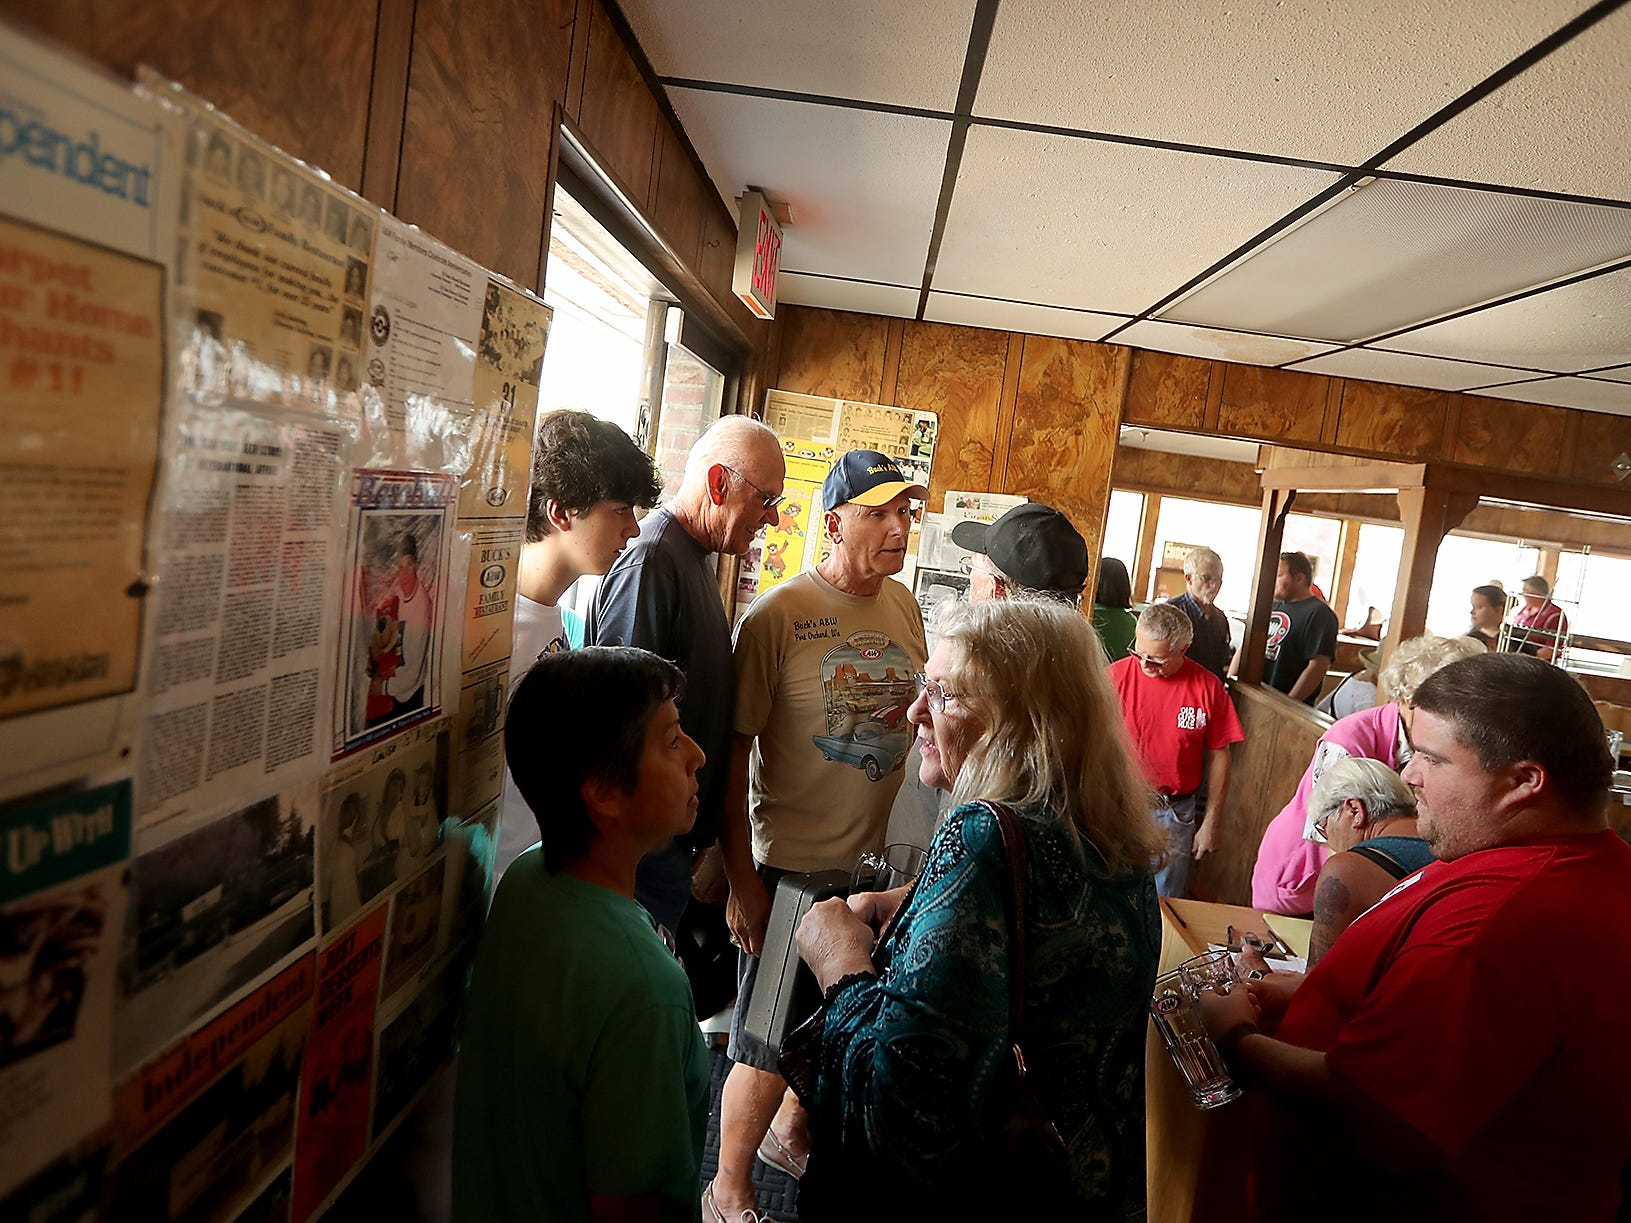 Rick Gehring (center) stands among the crowd as they enter and exit during a sports memorabilia giveaway and restaurant equipment sale at the A&W in Port Orchard on Wednesday, August 29, 2018.